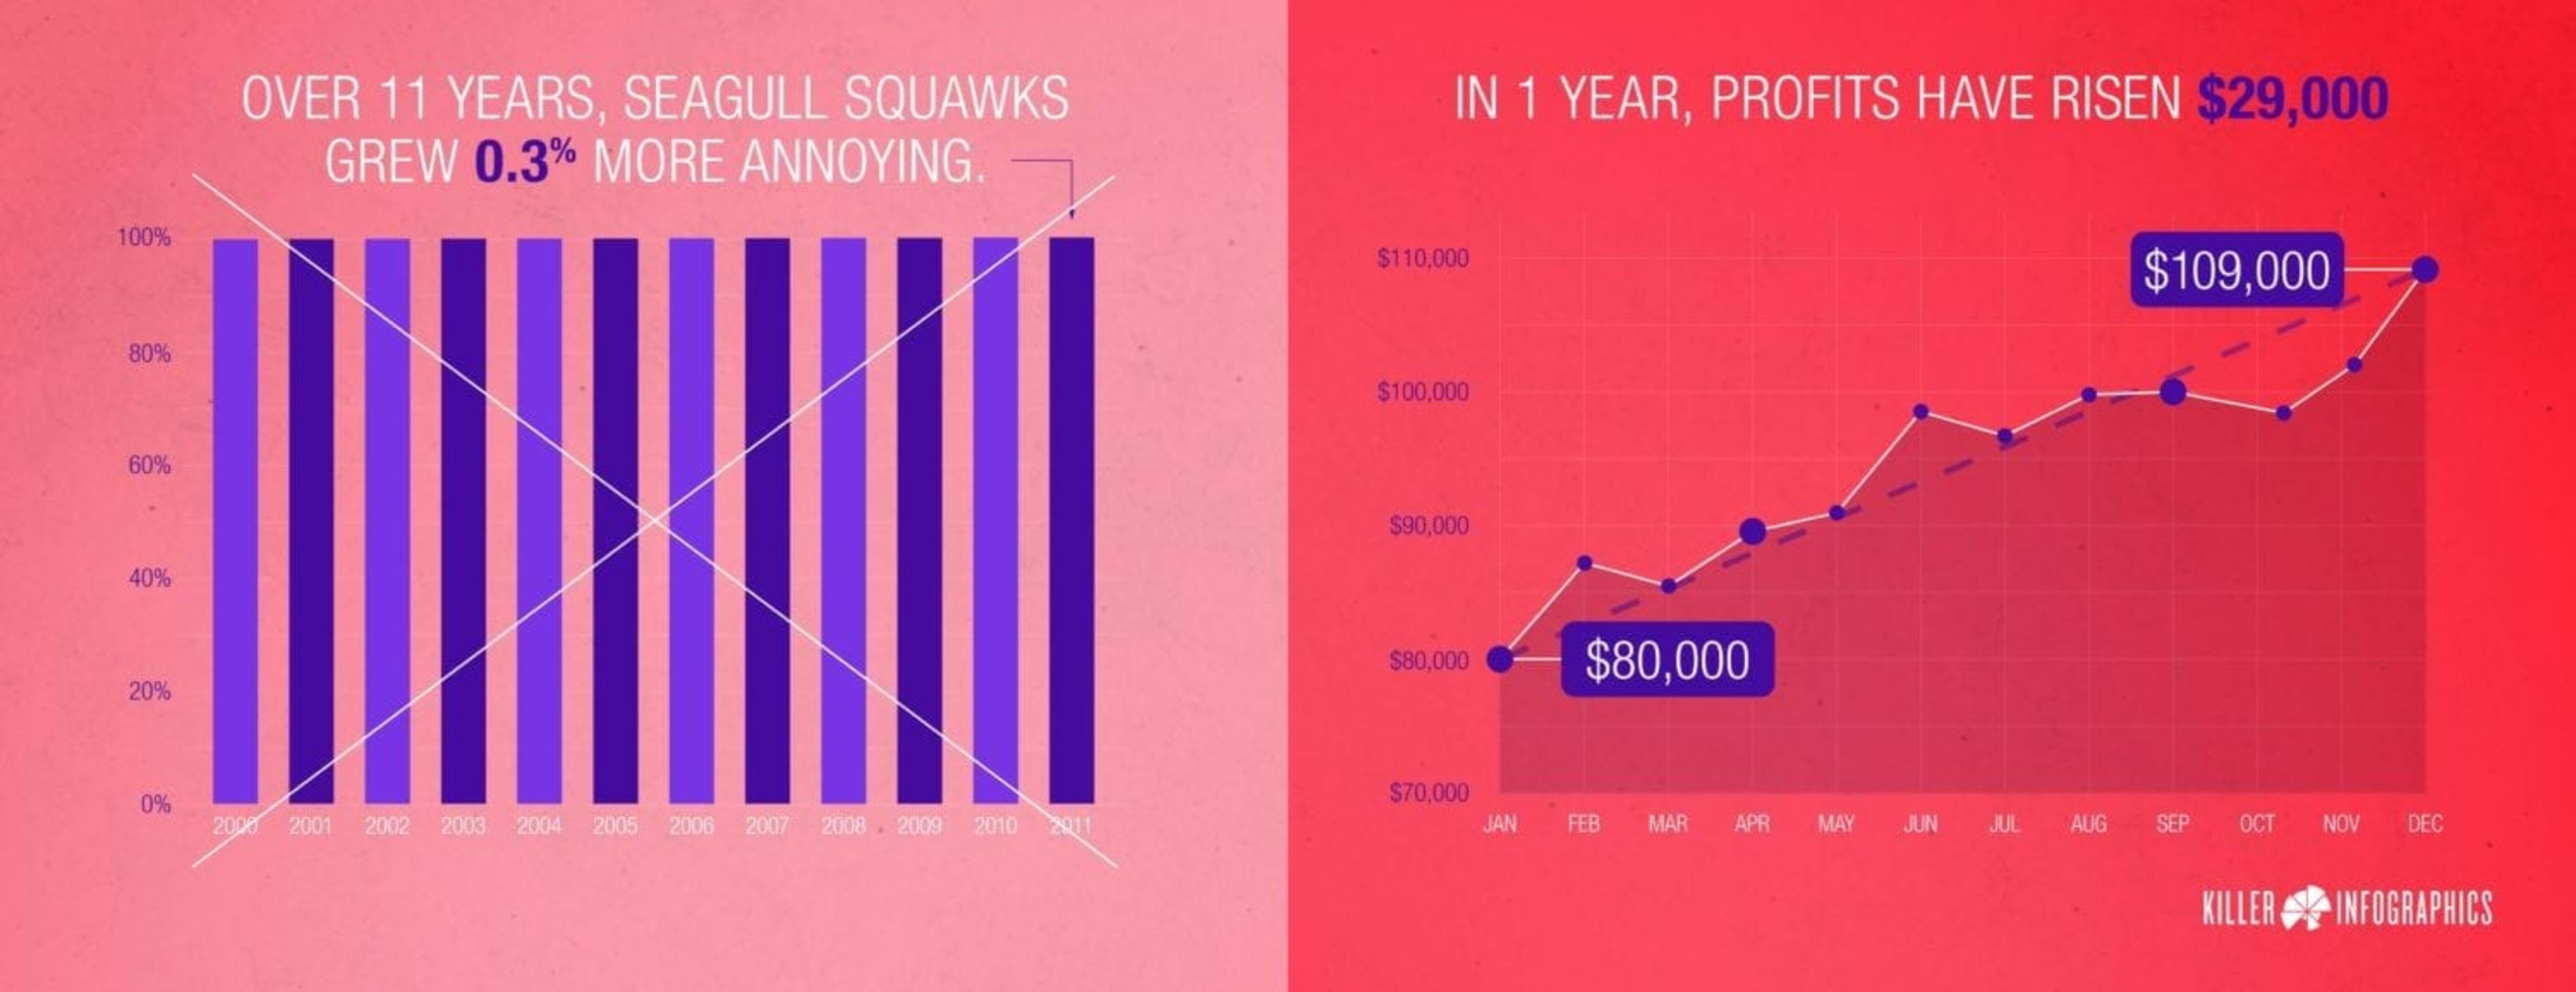 Effective-Data-Visualization-Seagull-Squawk-Profits